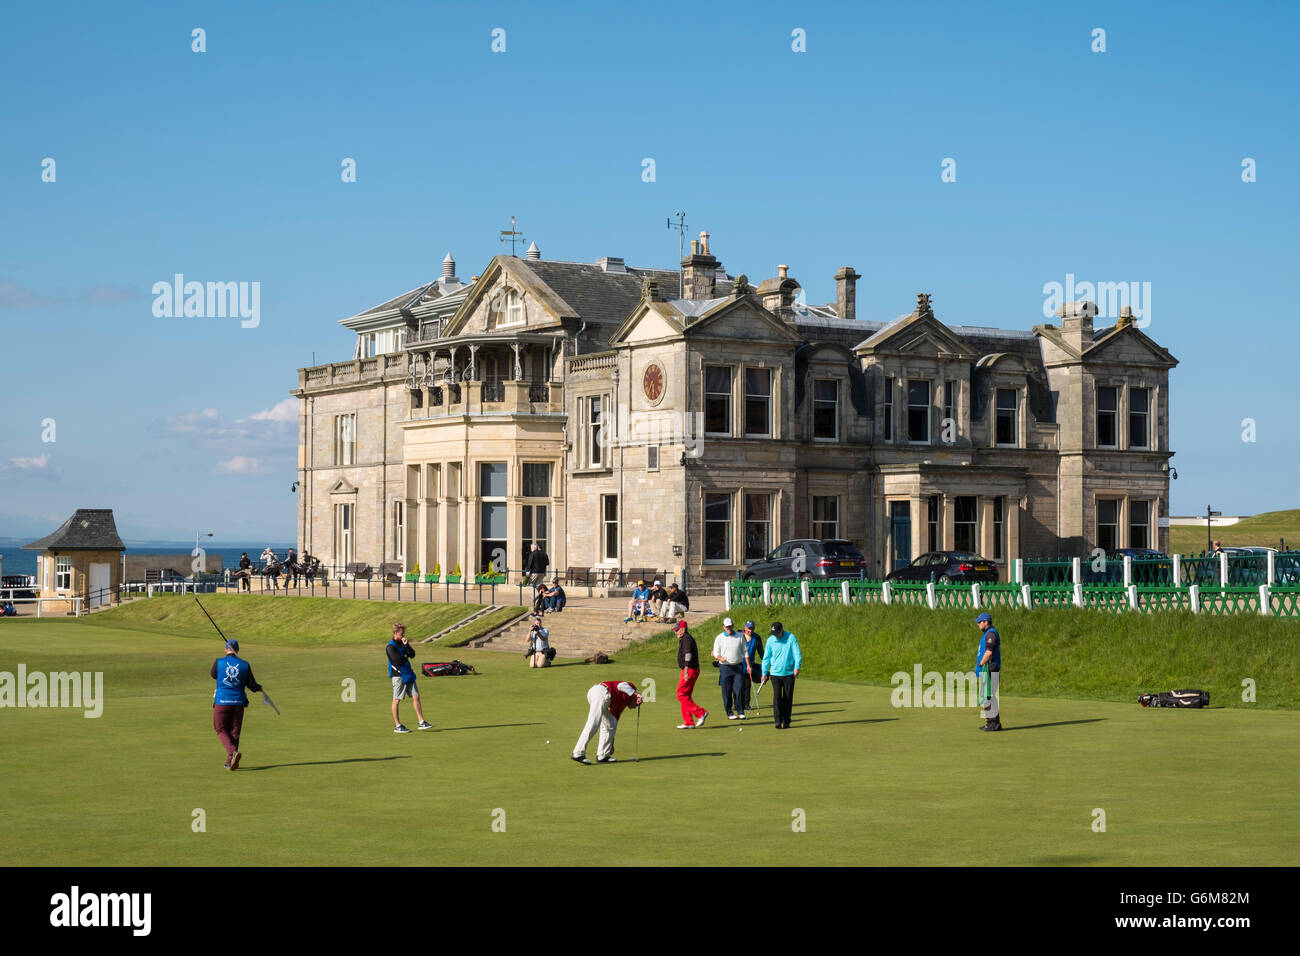 The Royal and Ancient Clubhouse beside 18th green on Old Course at St Andrews golf course in Fife, Scotland, united - Stock Image